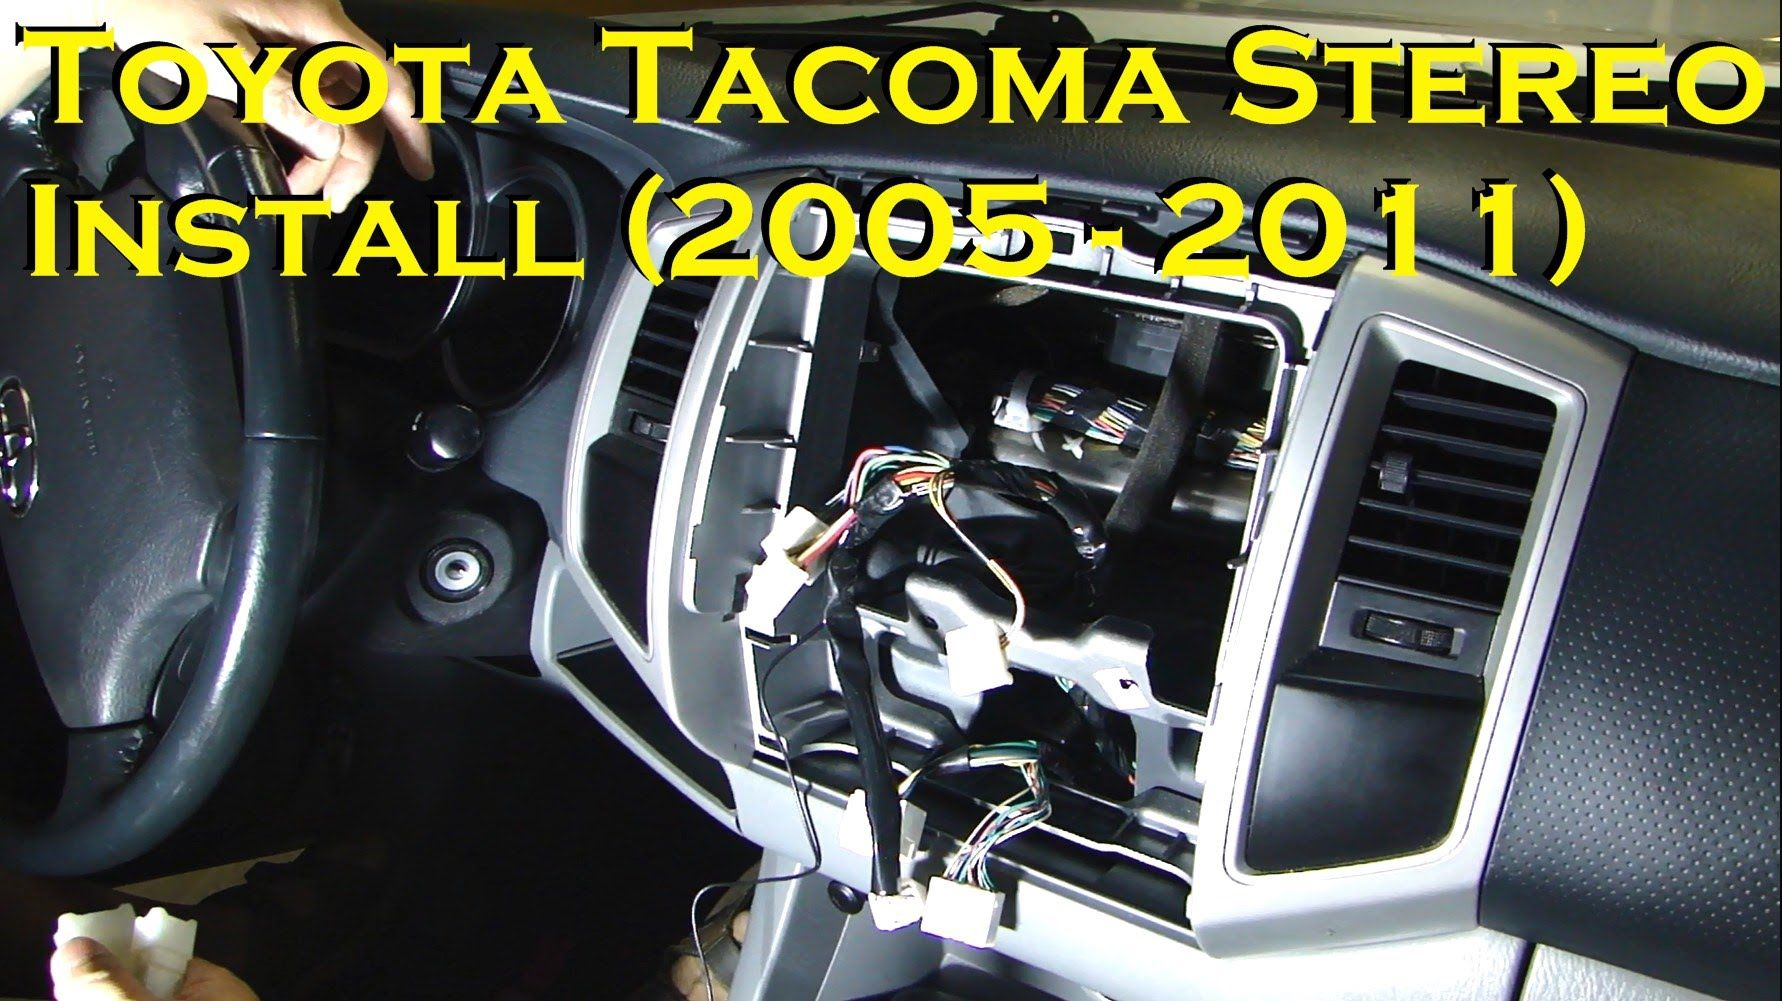 2004 tacoma wiring diagram wiring diagram for 2001 toyota tacoma the wiring diagram 1999 toyota tacoma wiring diagram nilza wiring